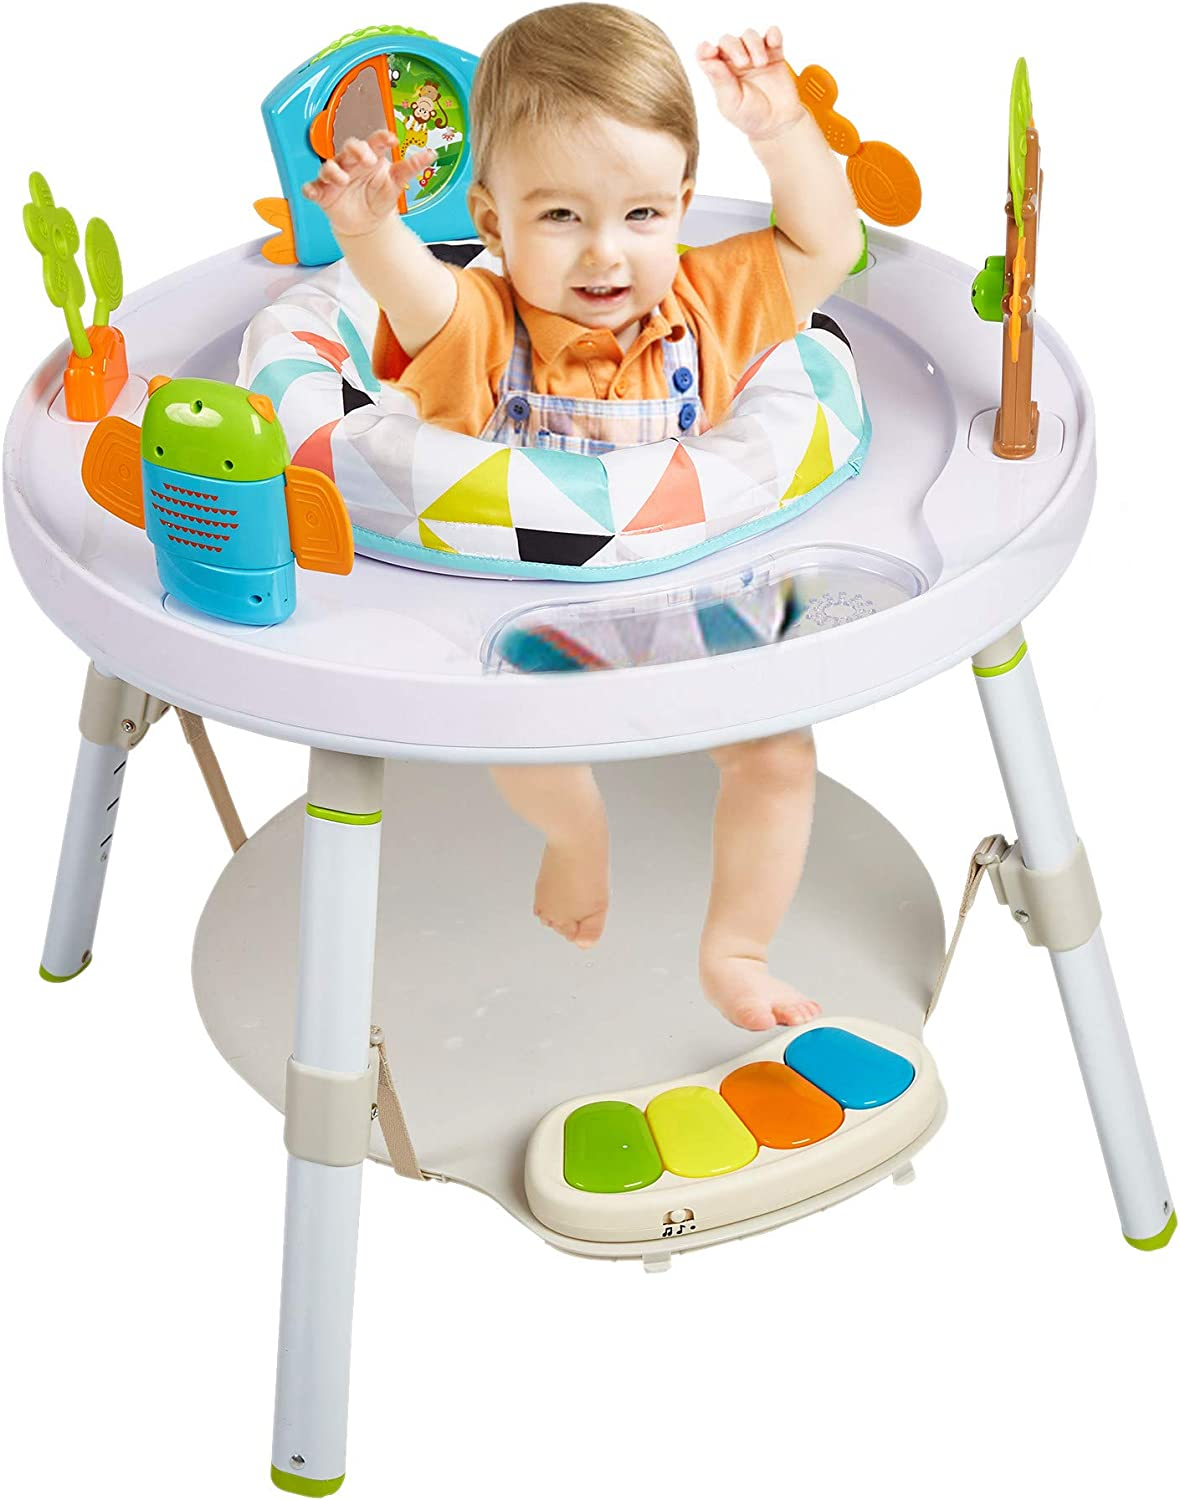 Amazon.com: Dporticus Baby 3-Stage Jump Entertainers Activity